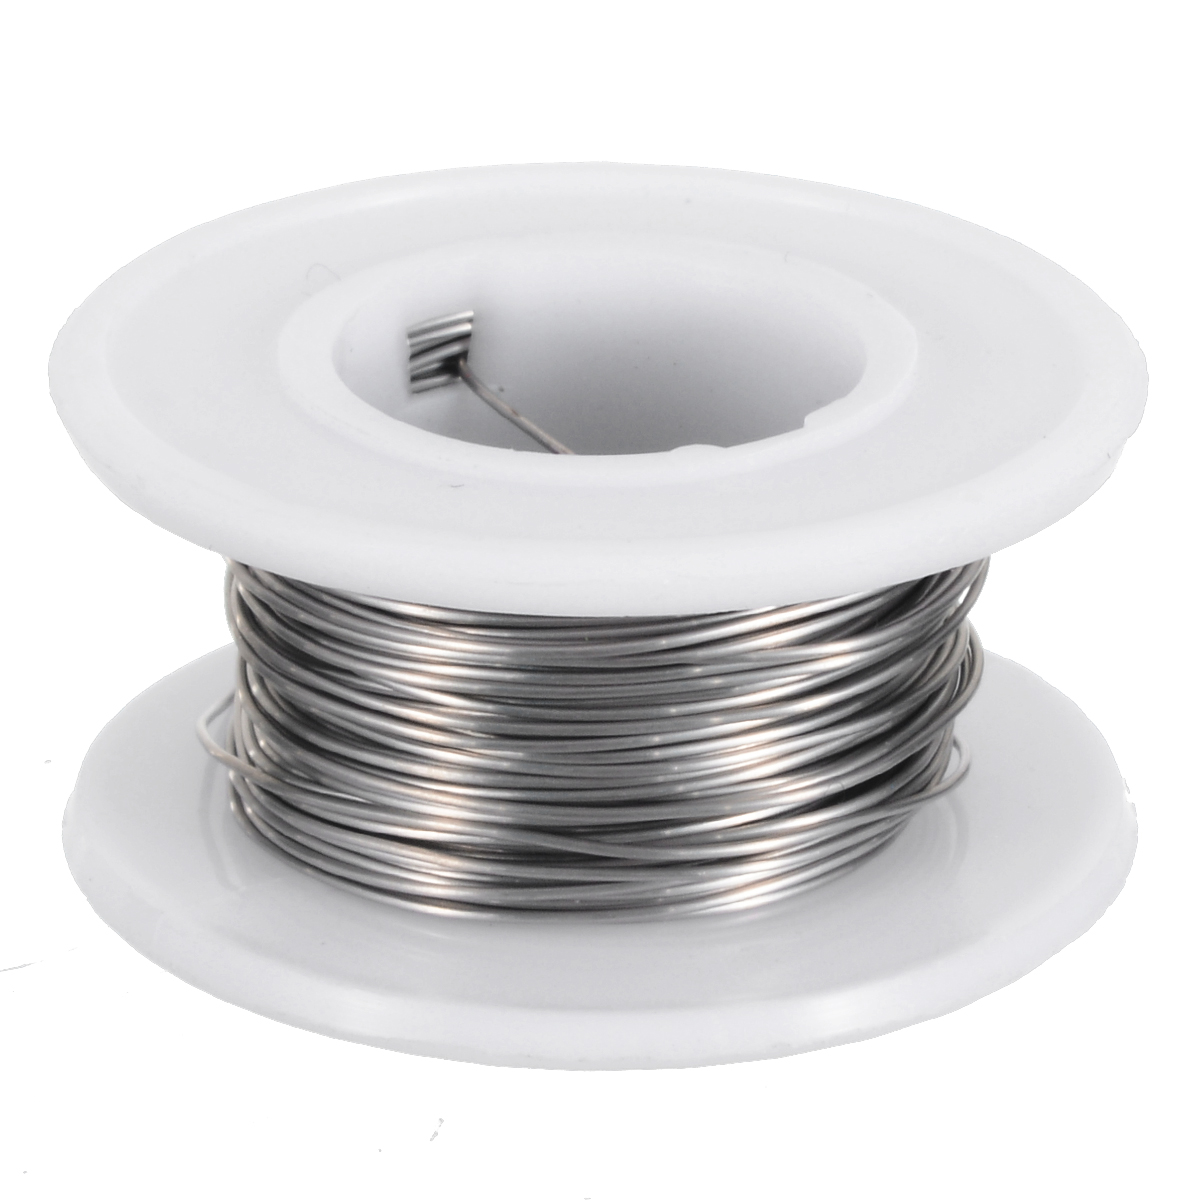 1 Roll 10M Nichrome Wire 0.5mm Diam Cr20Ni80 Heating Wire Resistance Wires Industry Supplies